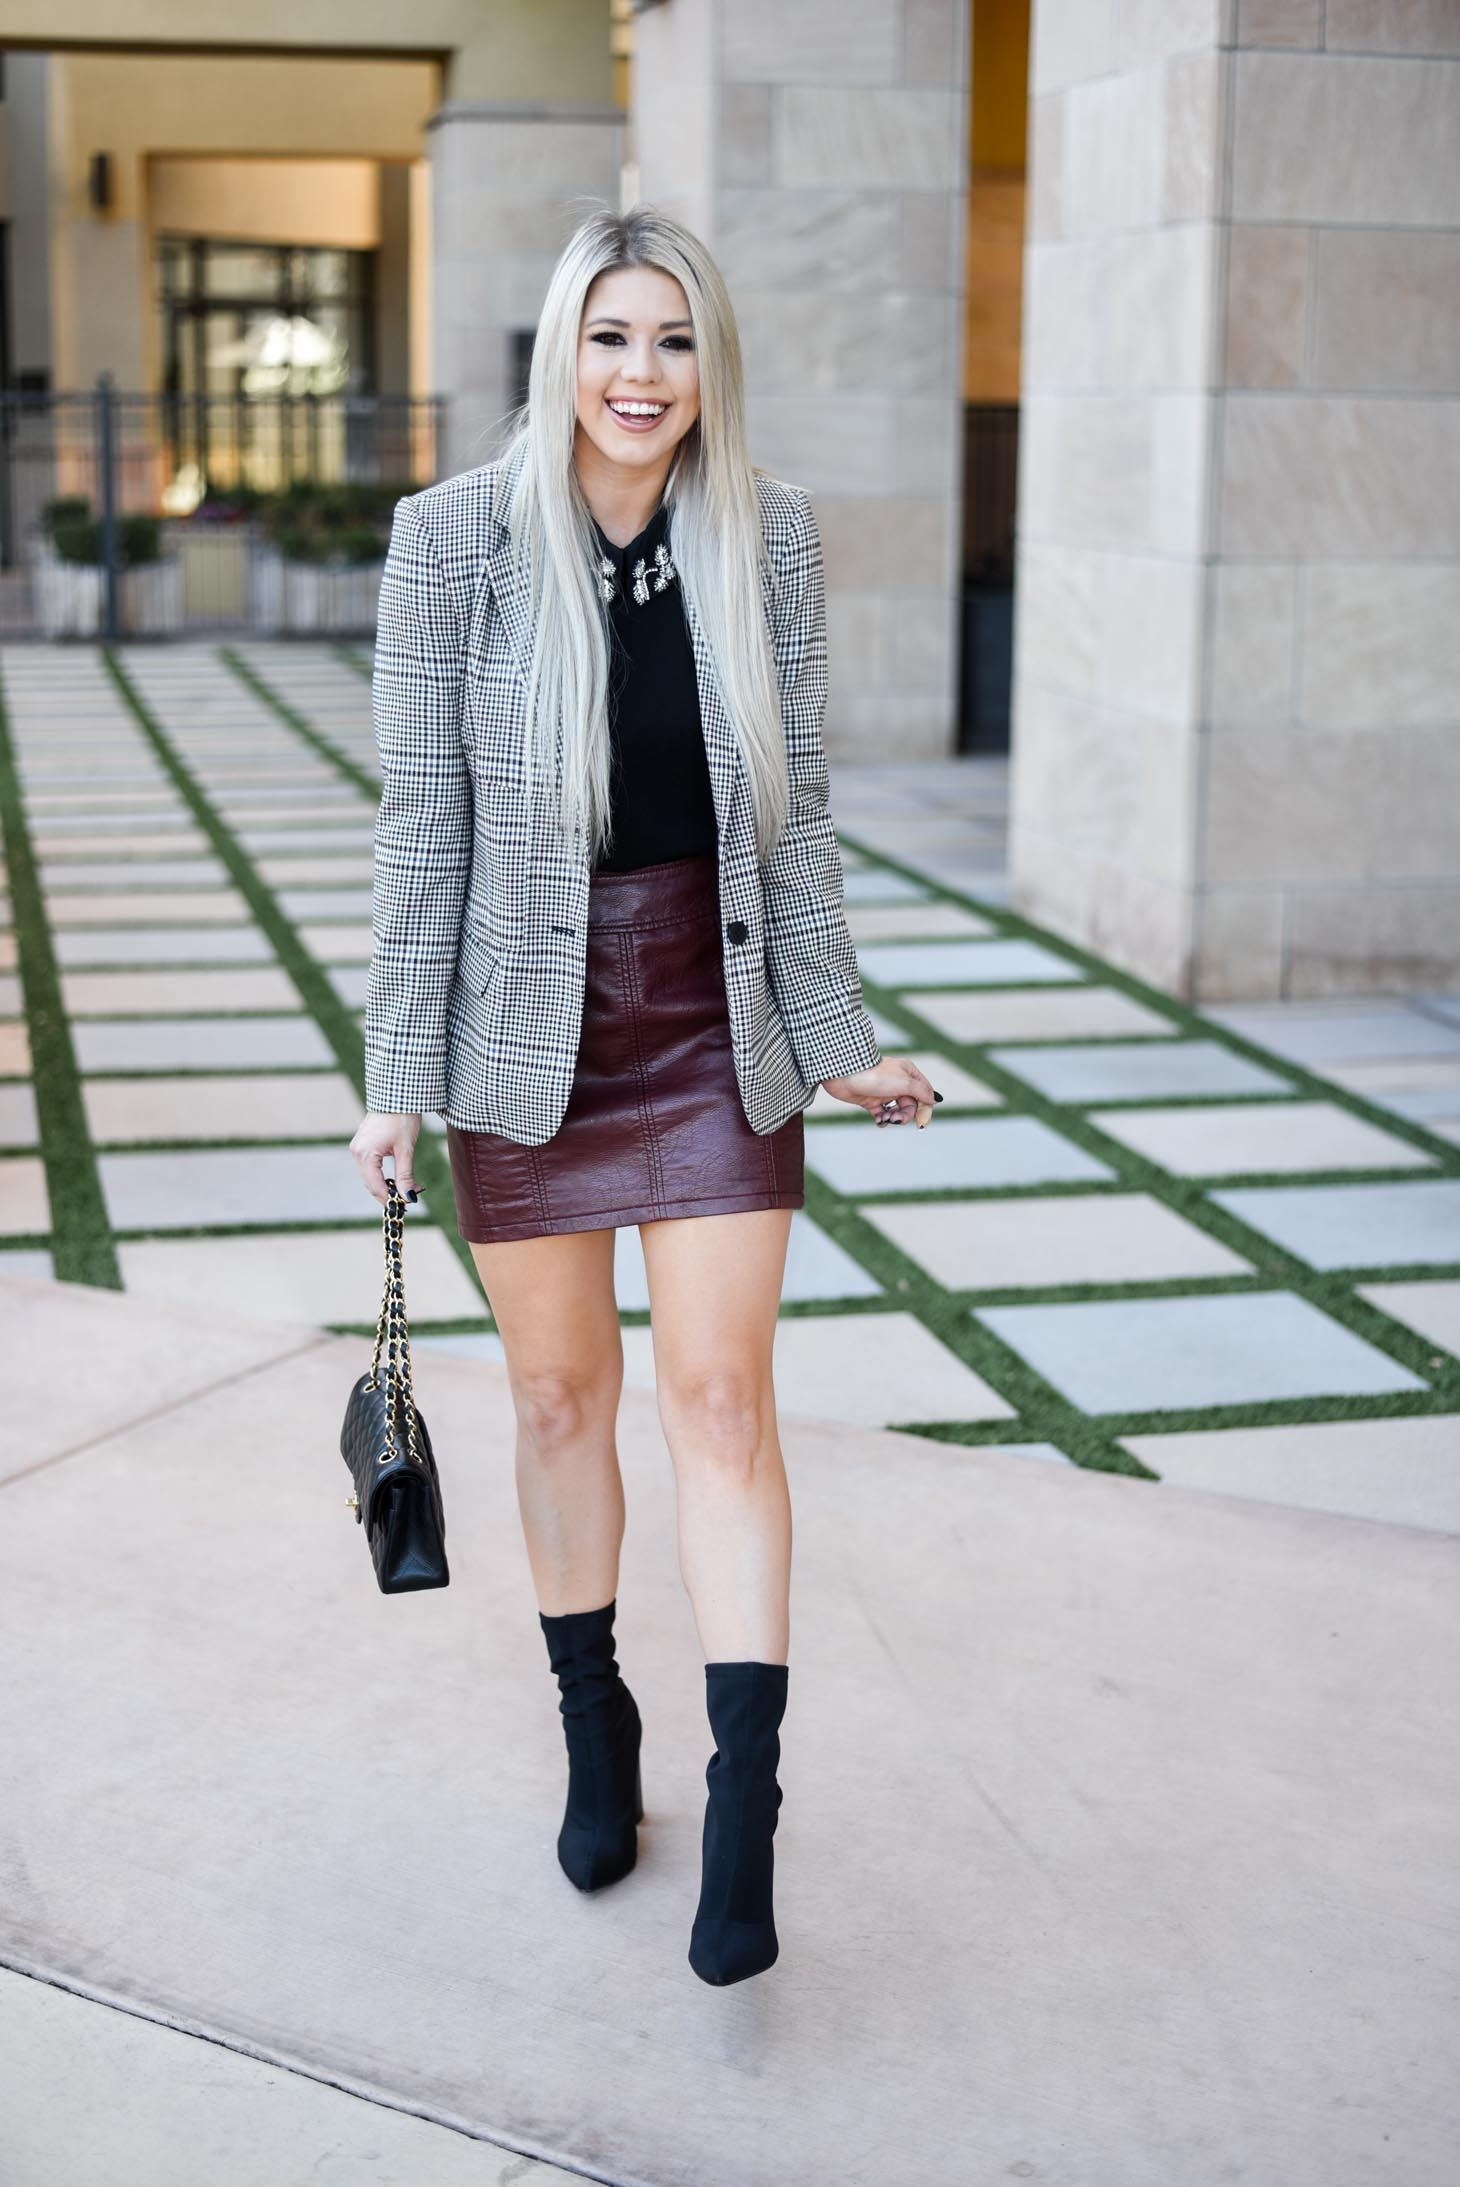 Erin Elizabeth of Wink and a Twirl shares the perfect way to style a leather mini this fall